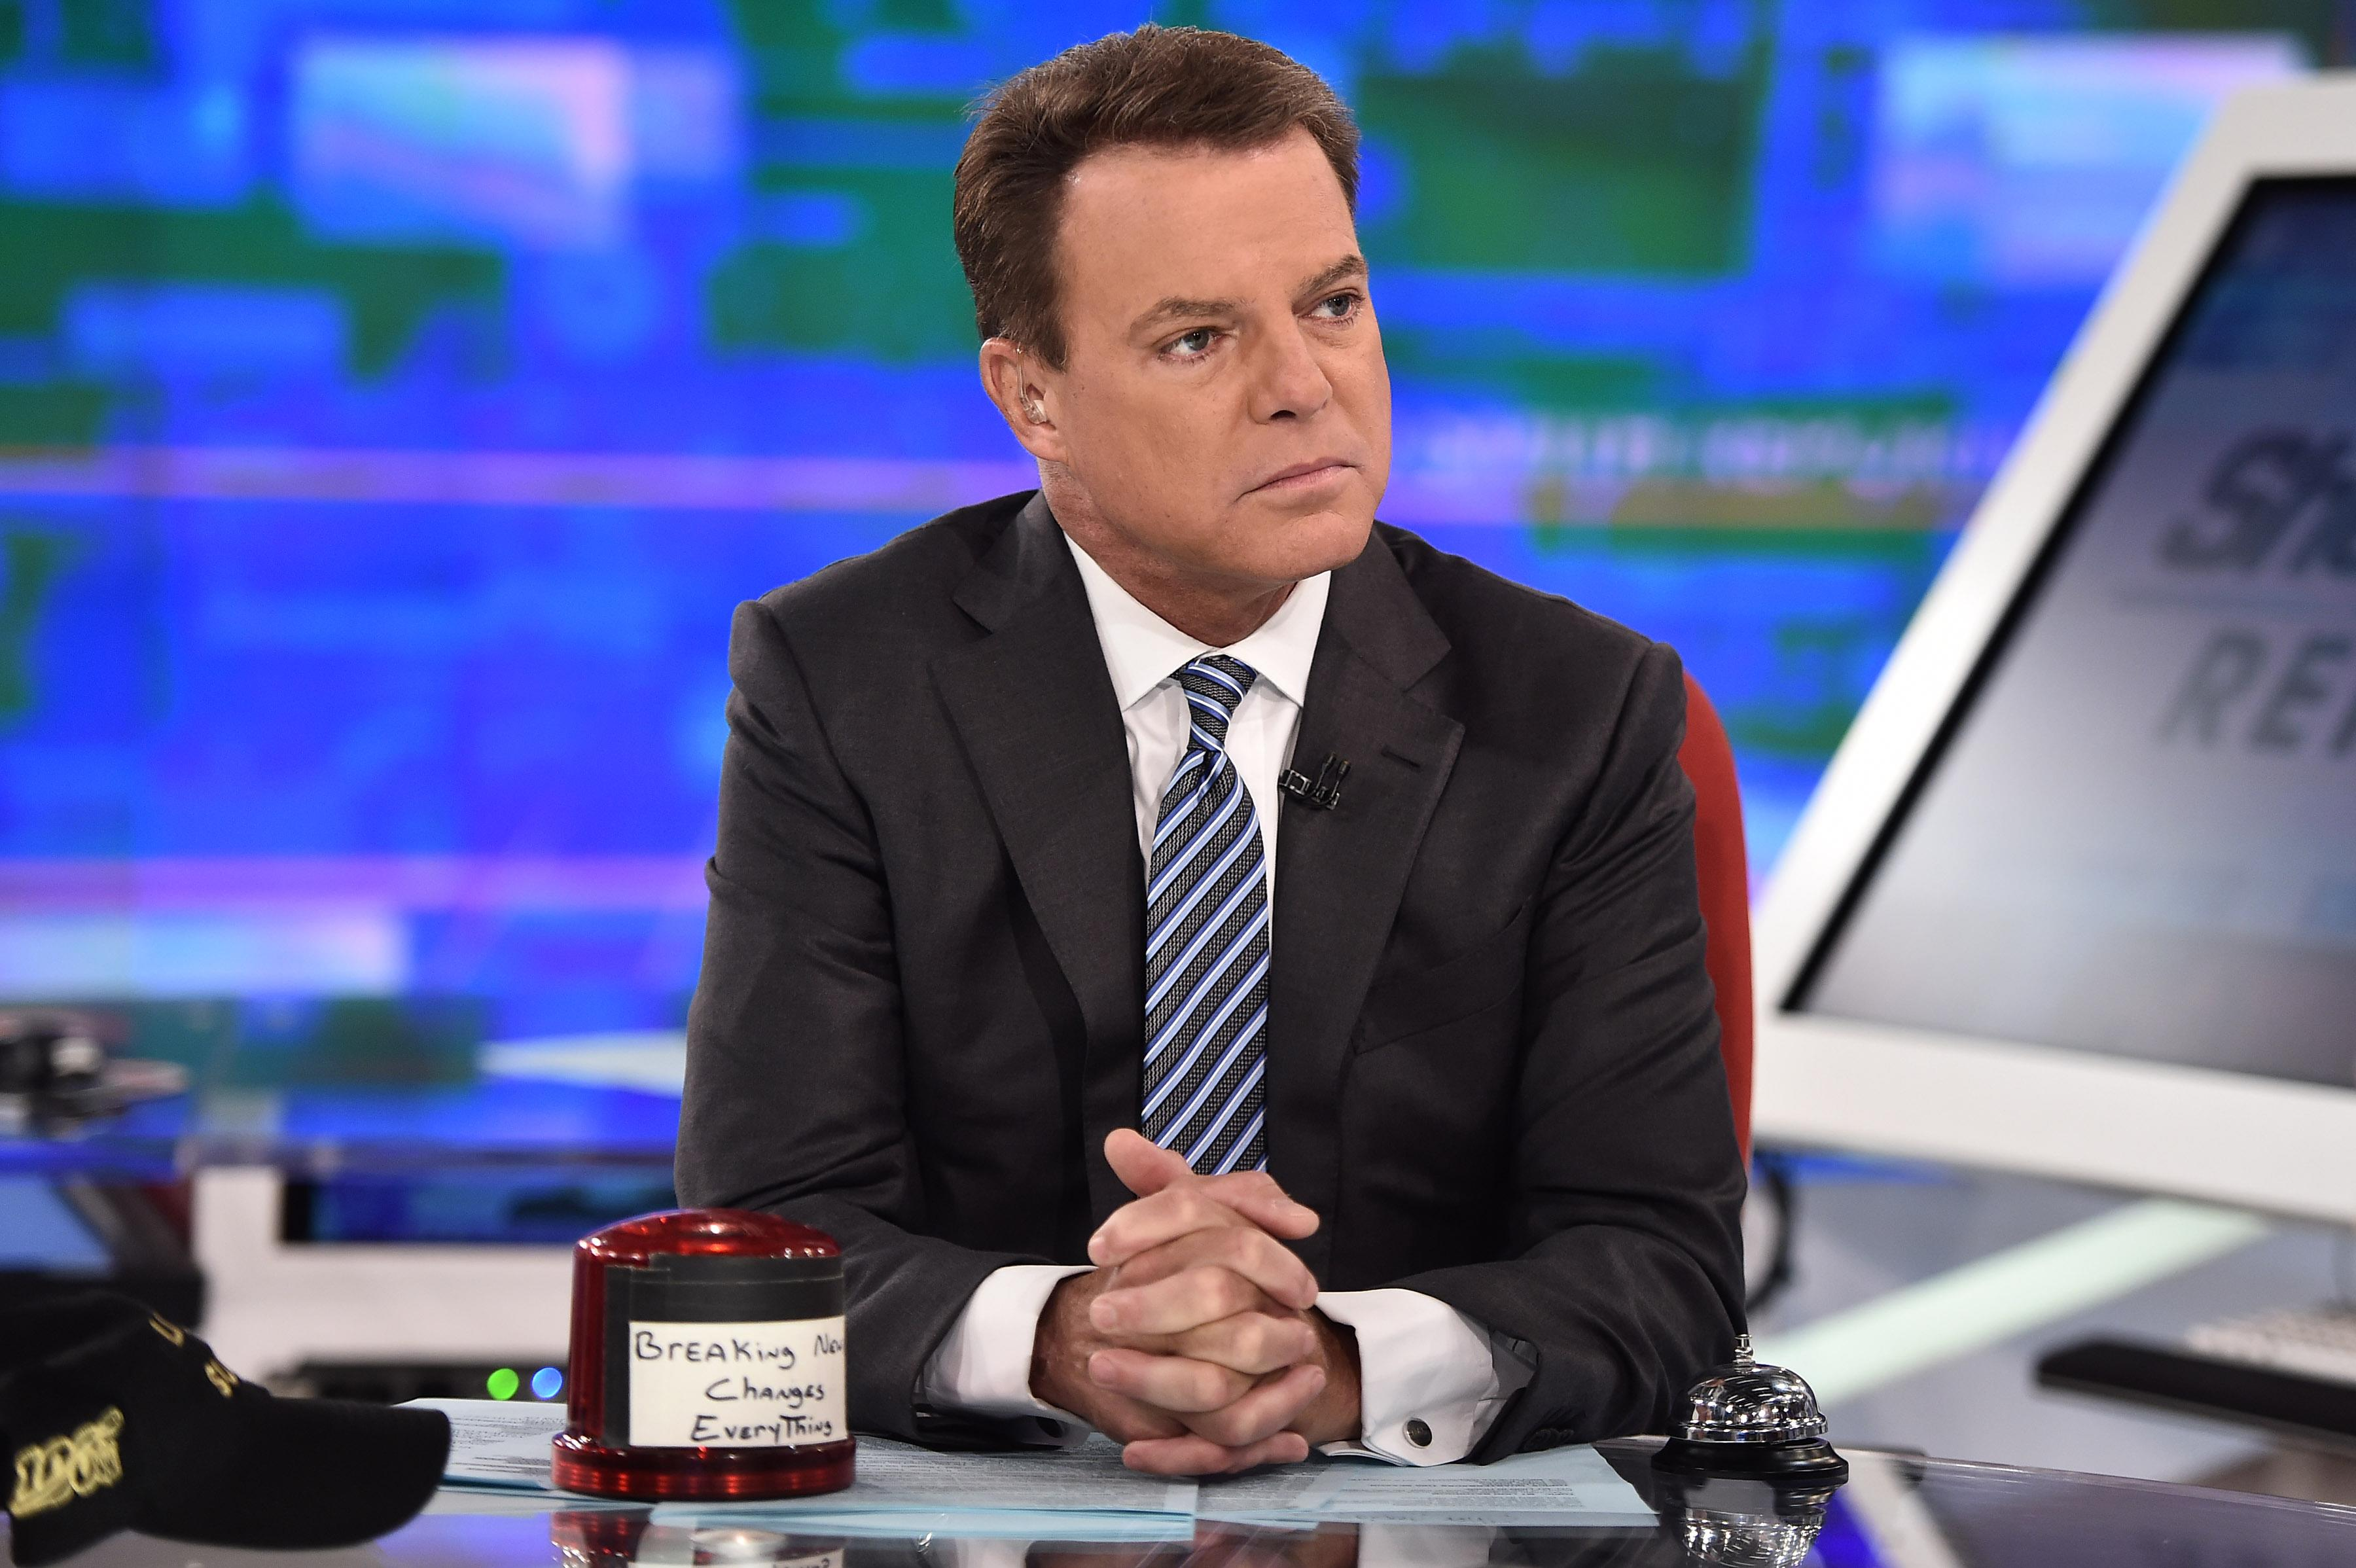 Shepard Smith exiting Fox News in surprise move, ready to 'begin a new chapter'